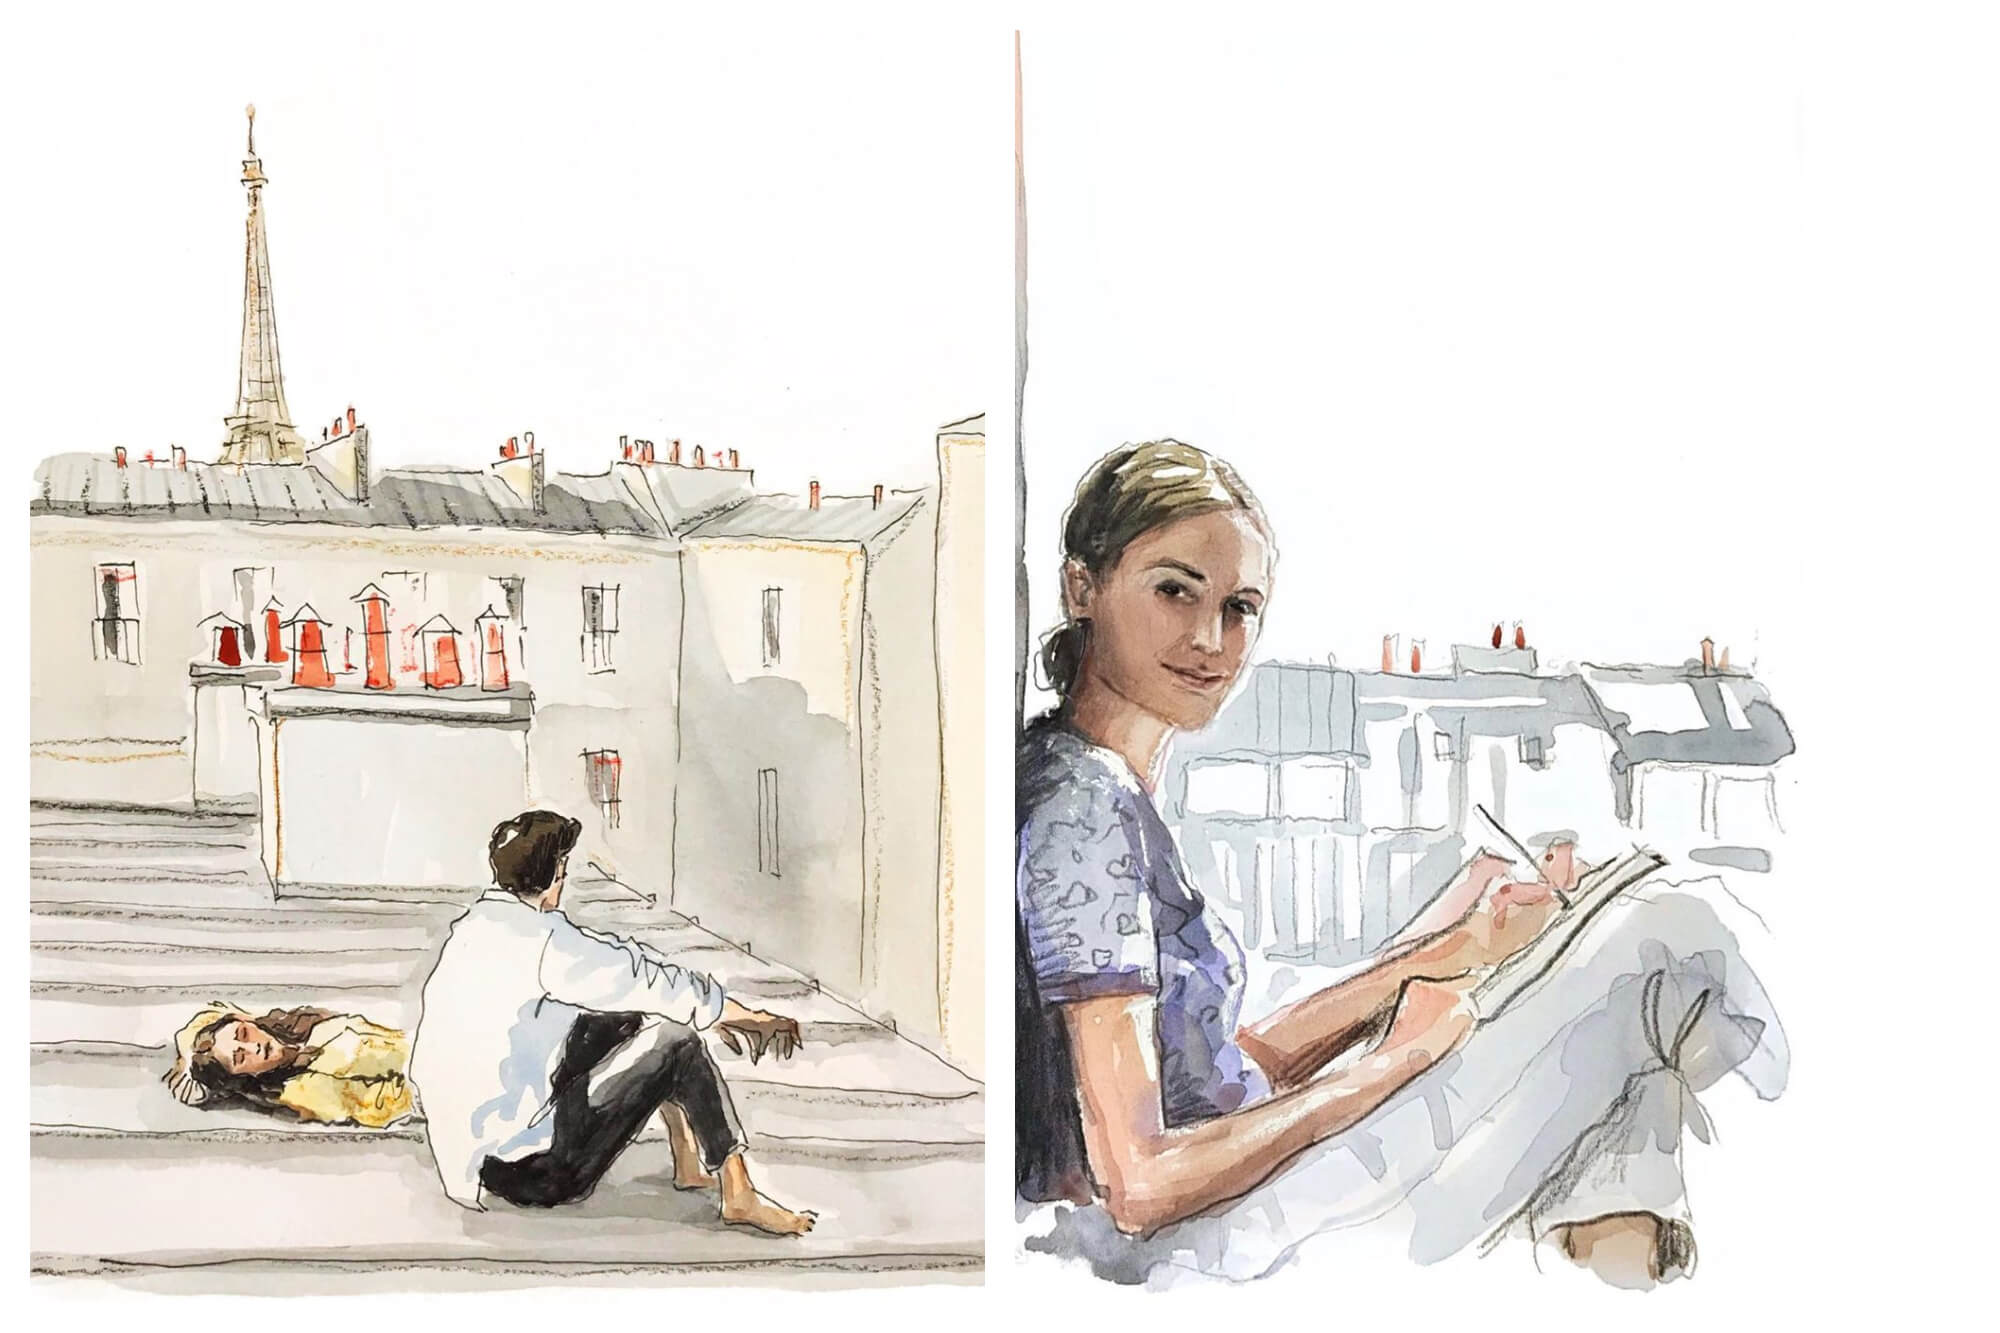 Left: A watercolor painting of a man sitting on a roof with a woman laying next to him with the Eiffel Tower in the background. Right: A watercolor painting of a woman smiling while she paints with gray rooftops behind her.